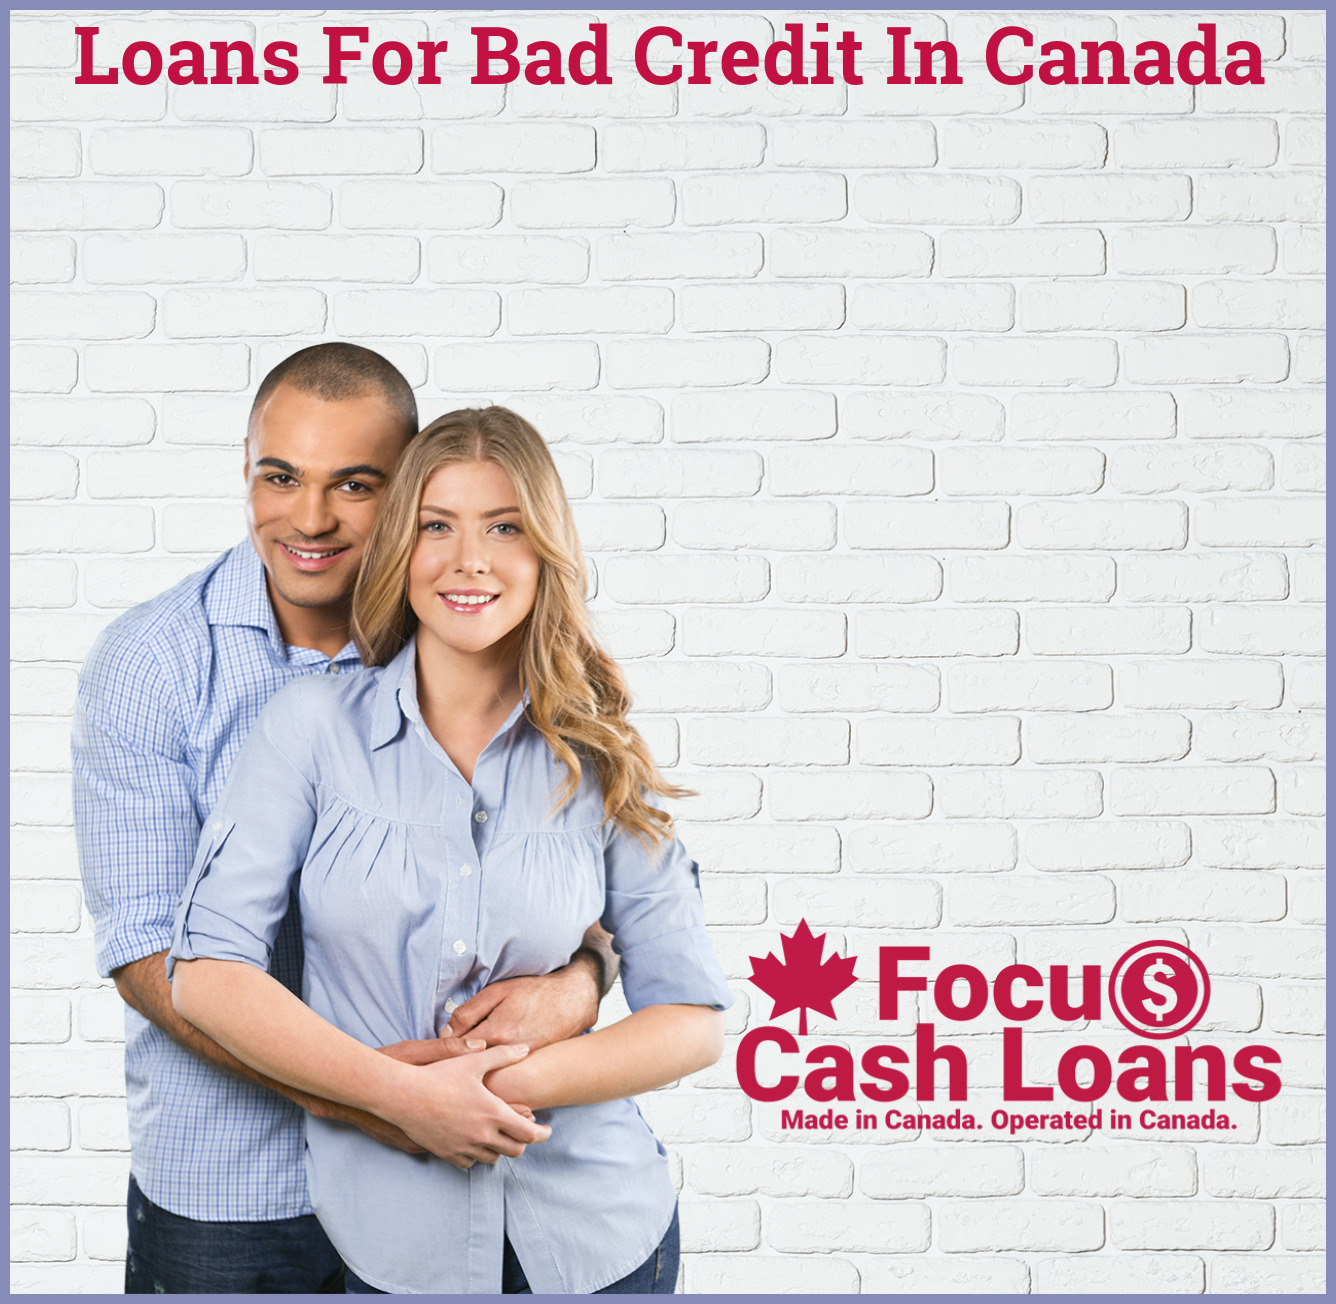 Loan For Bad Credit - Borrow up to $1500!